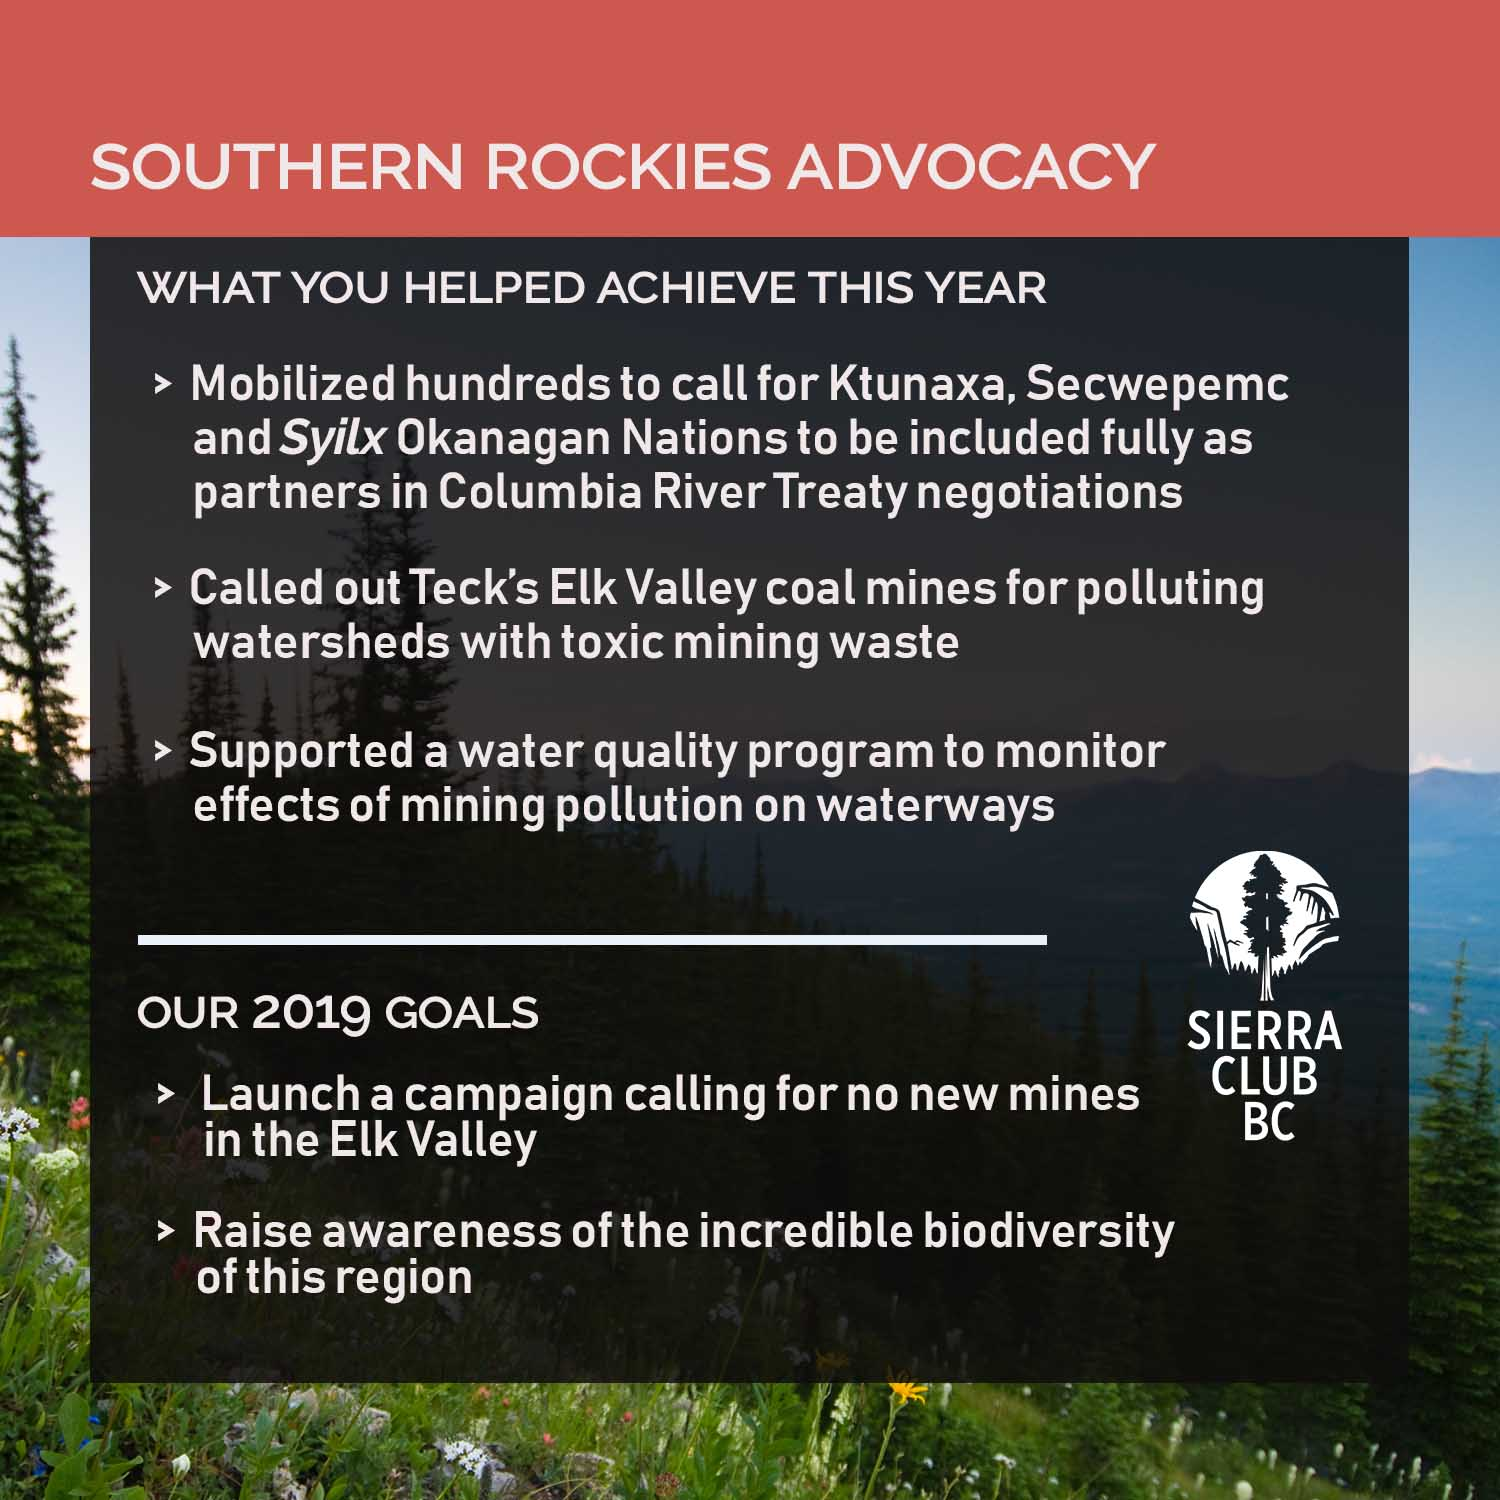 Thank you for making an impact in 2018! - Sierra Club BC